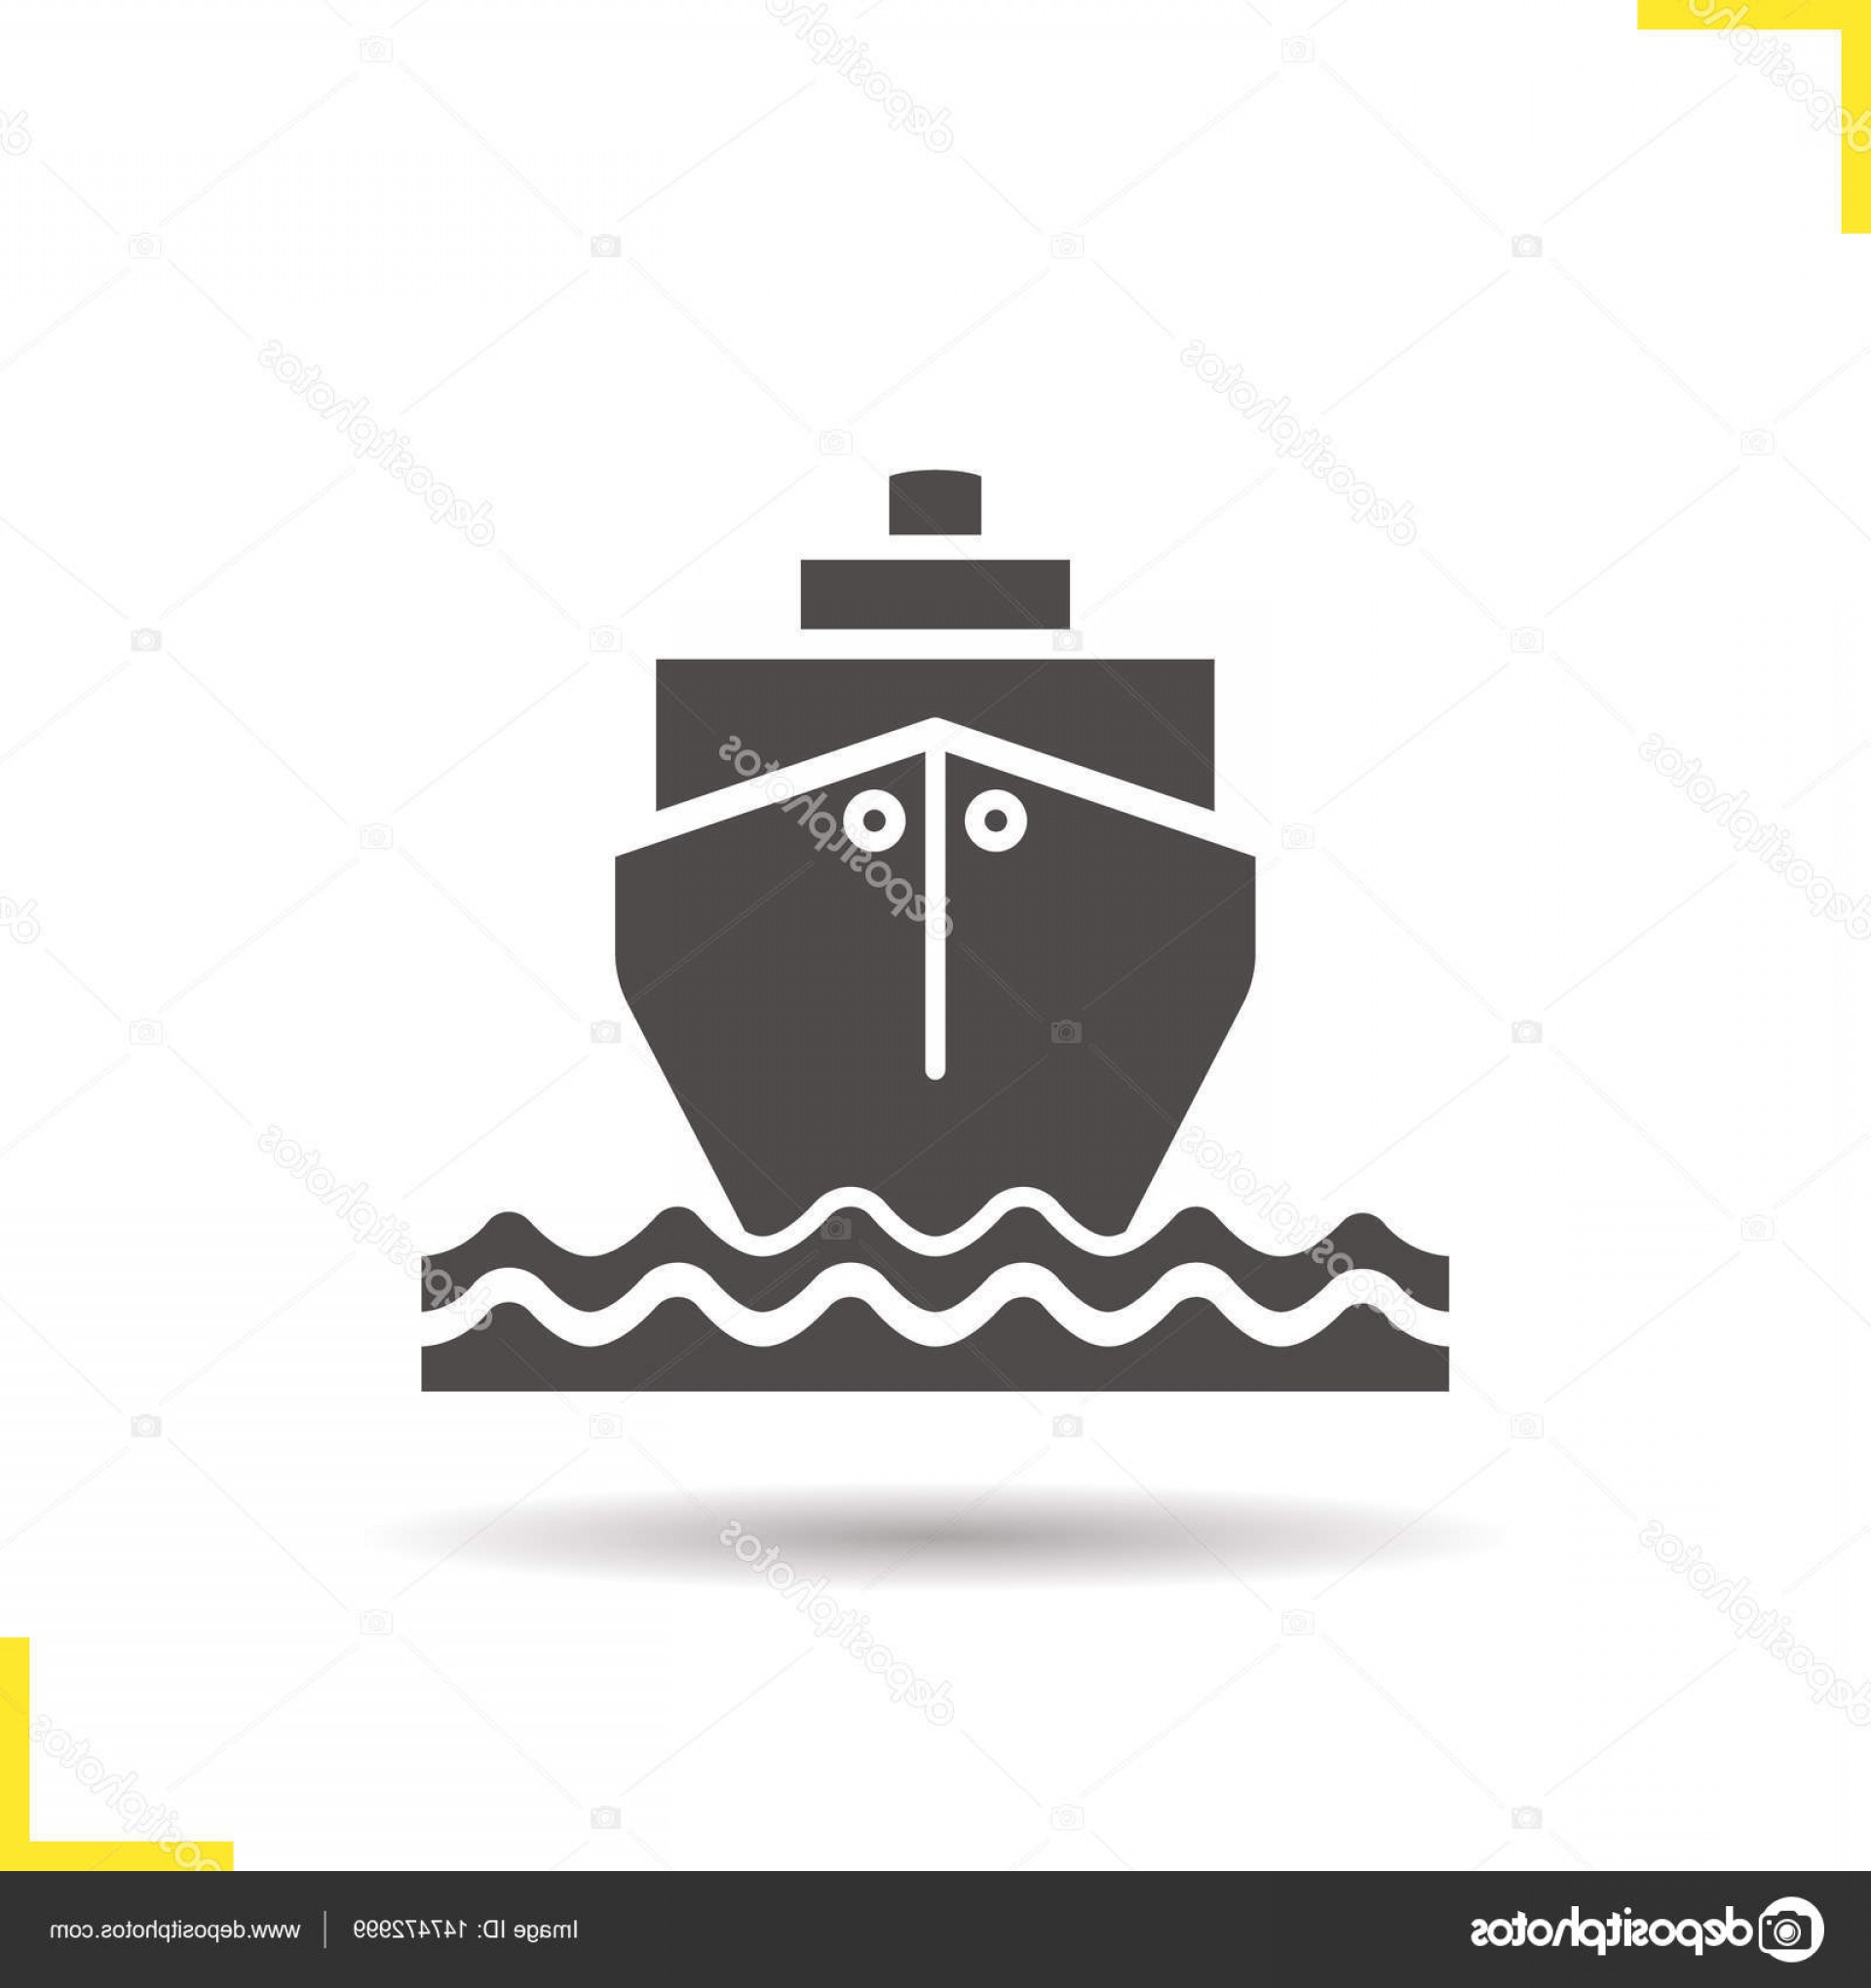 Waves With Cruise Ship Silhouette Vector: Stock Illustration Cruise Ship With Waves Icon